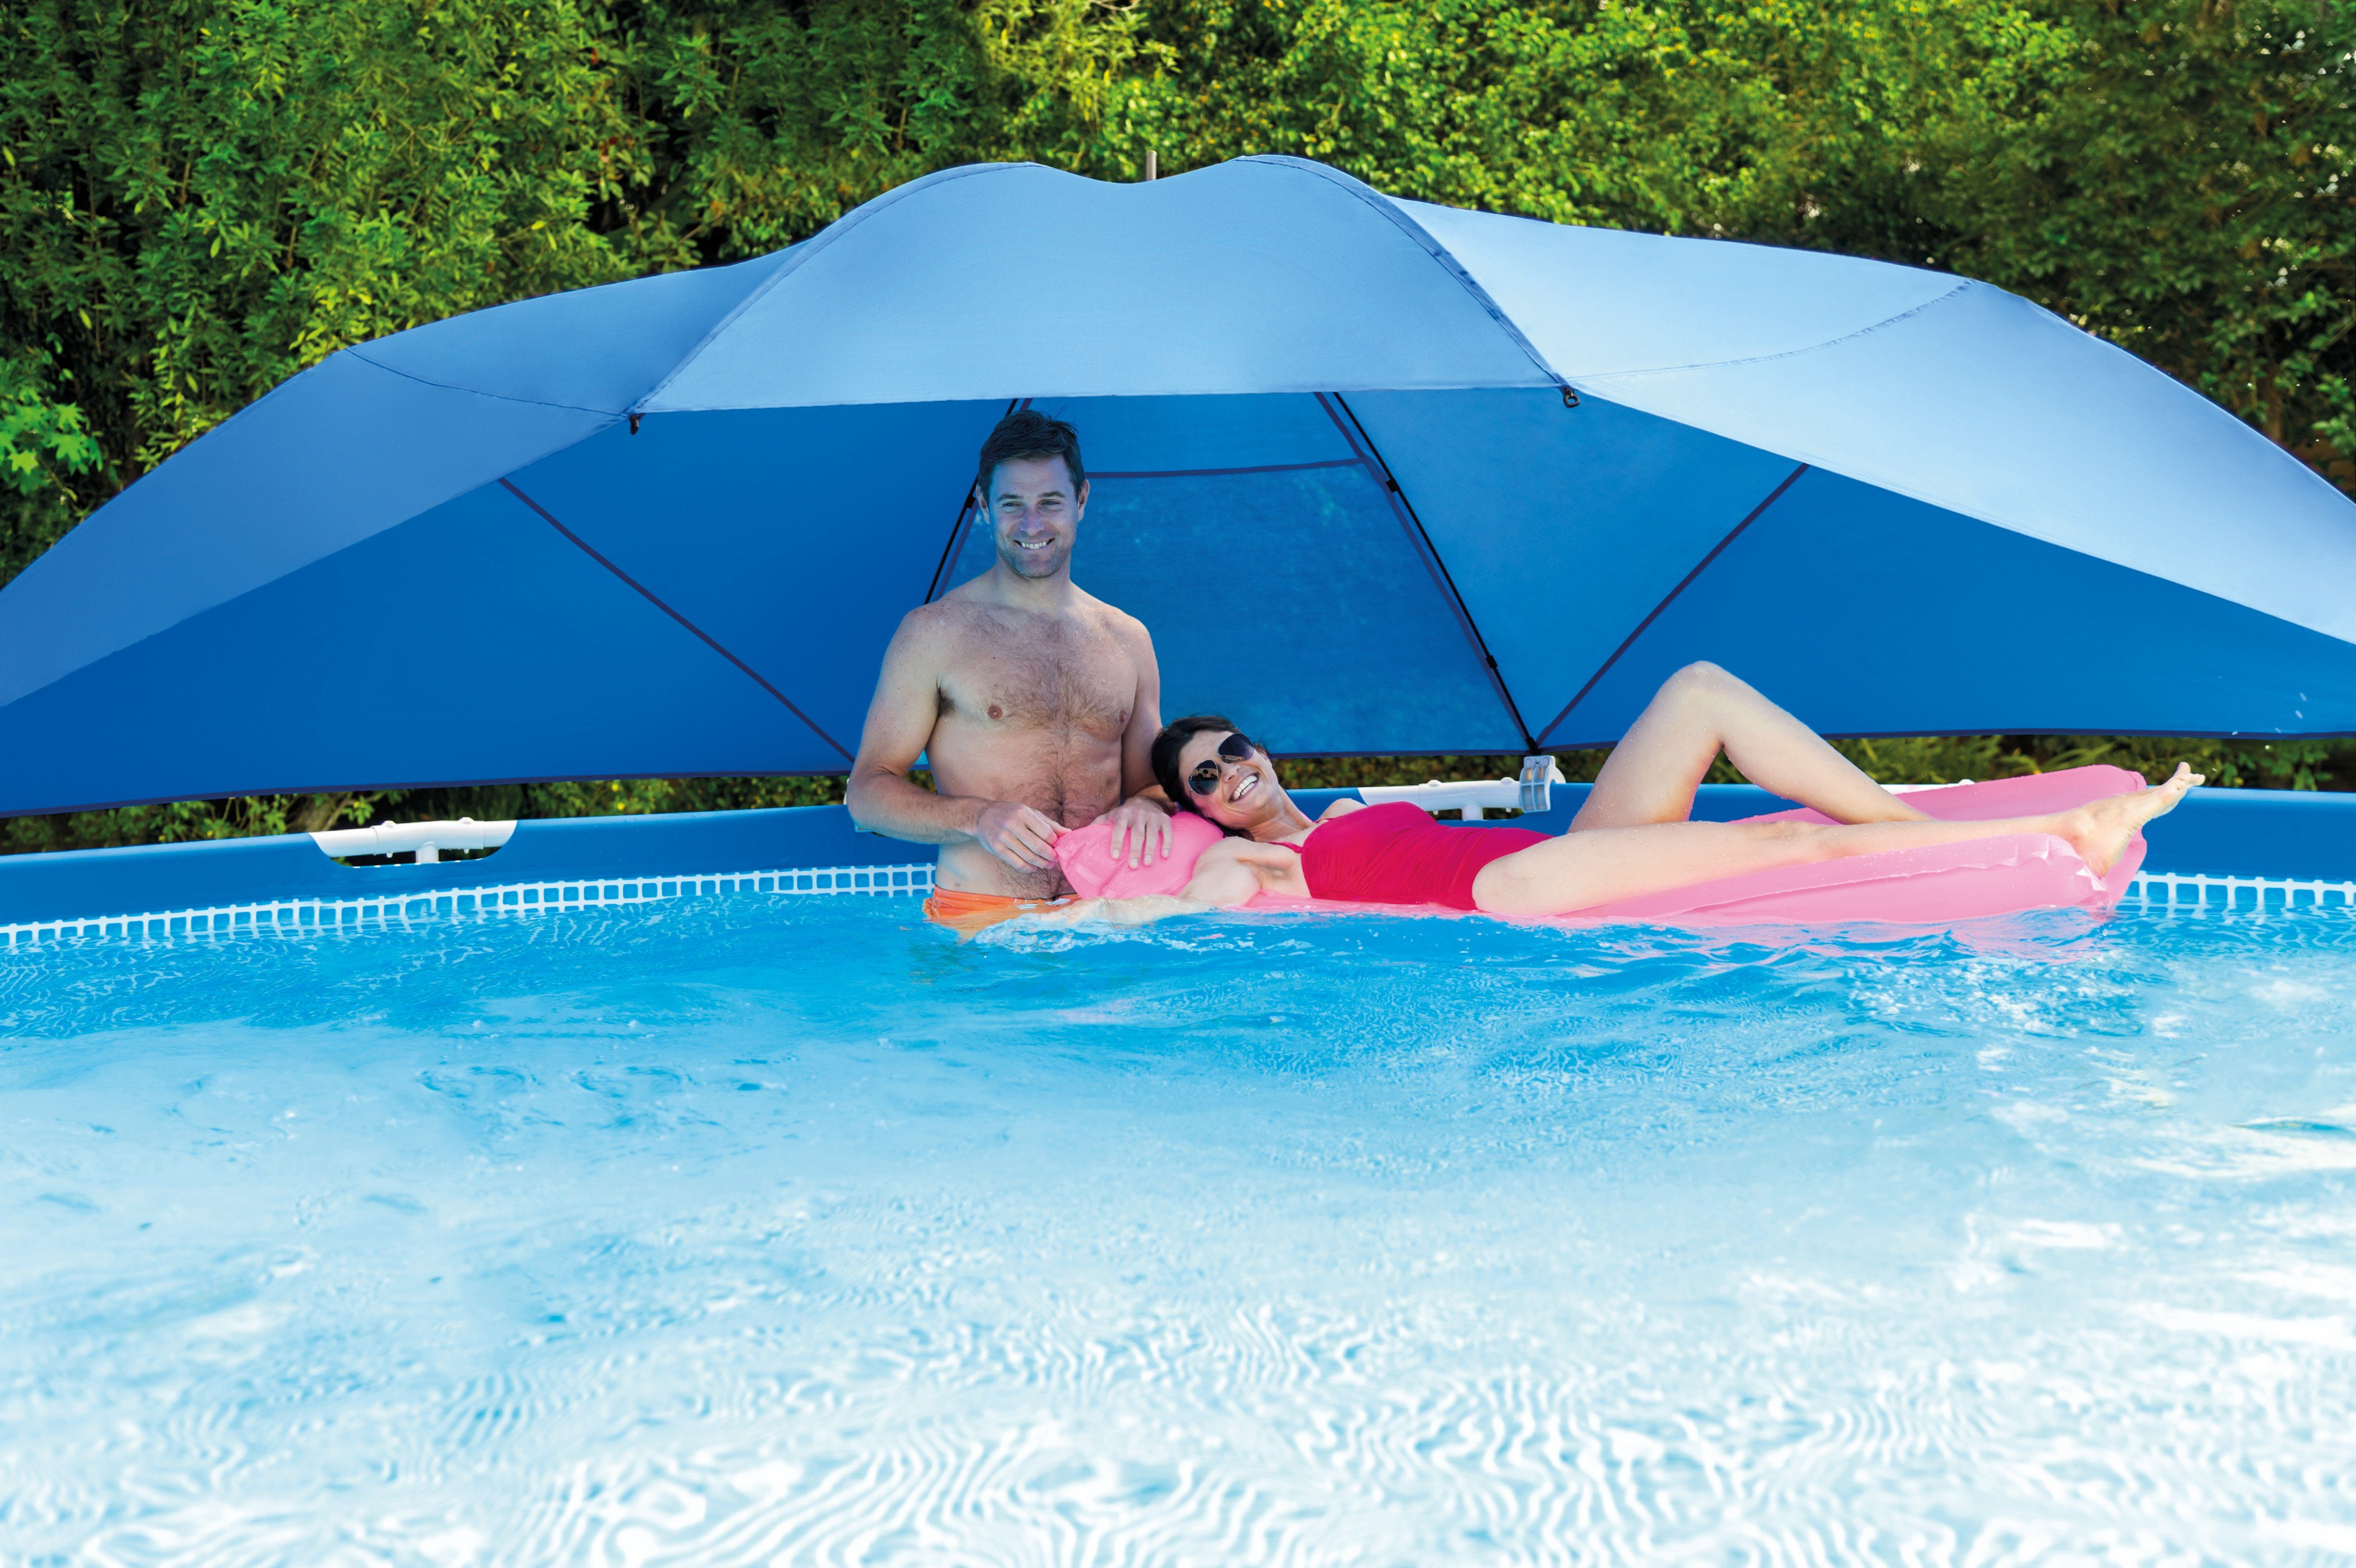 Intex Pool-Sonnendach, blau, »Pool Canopy«